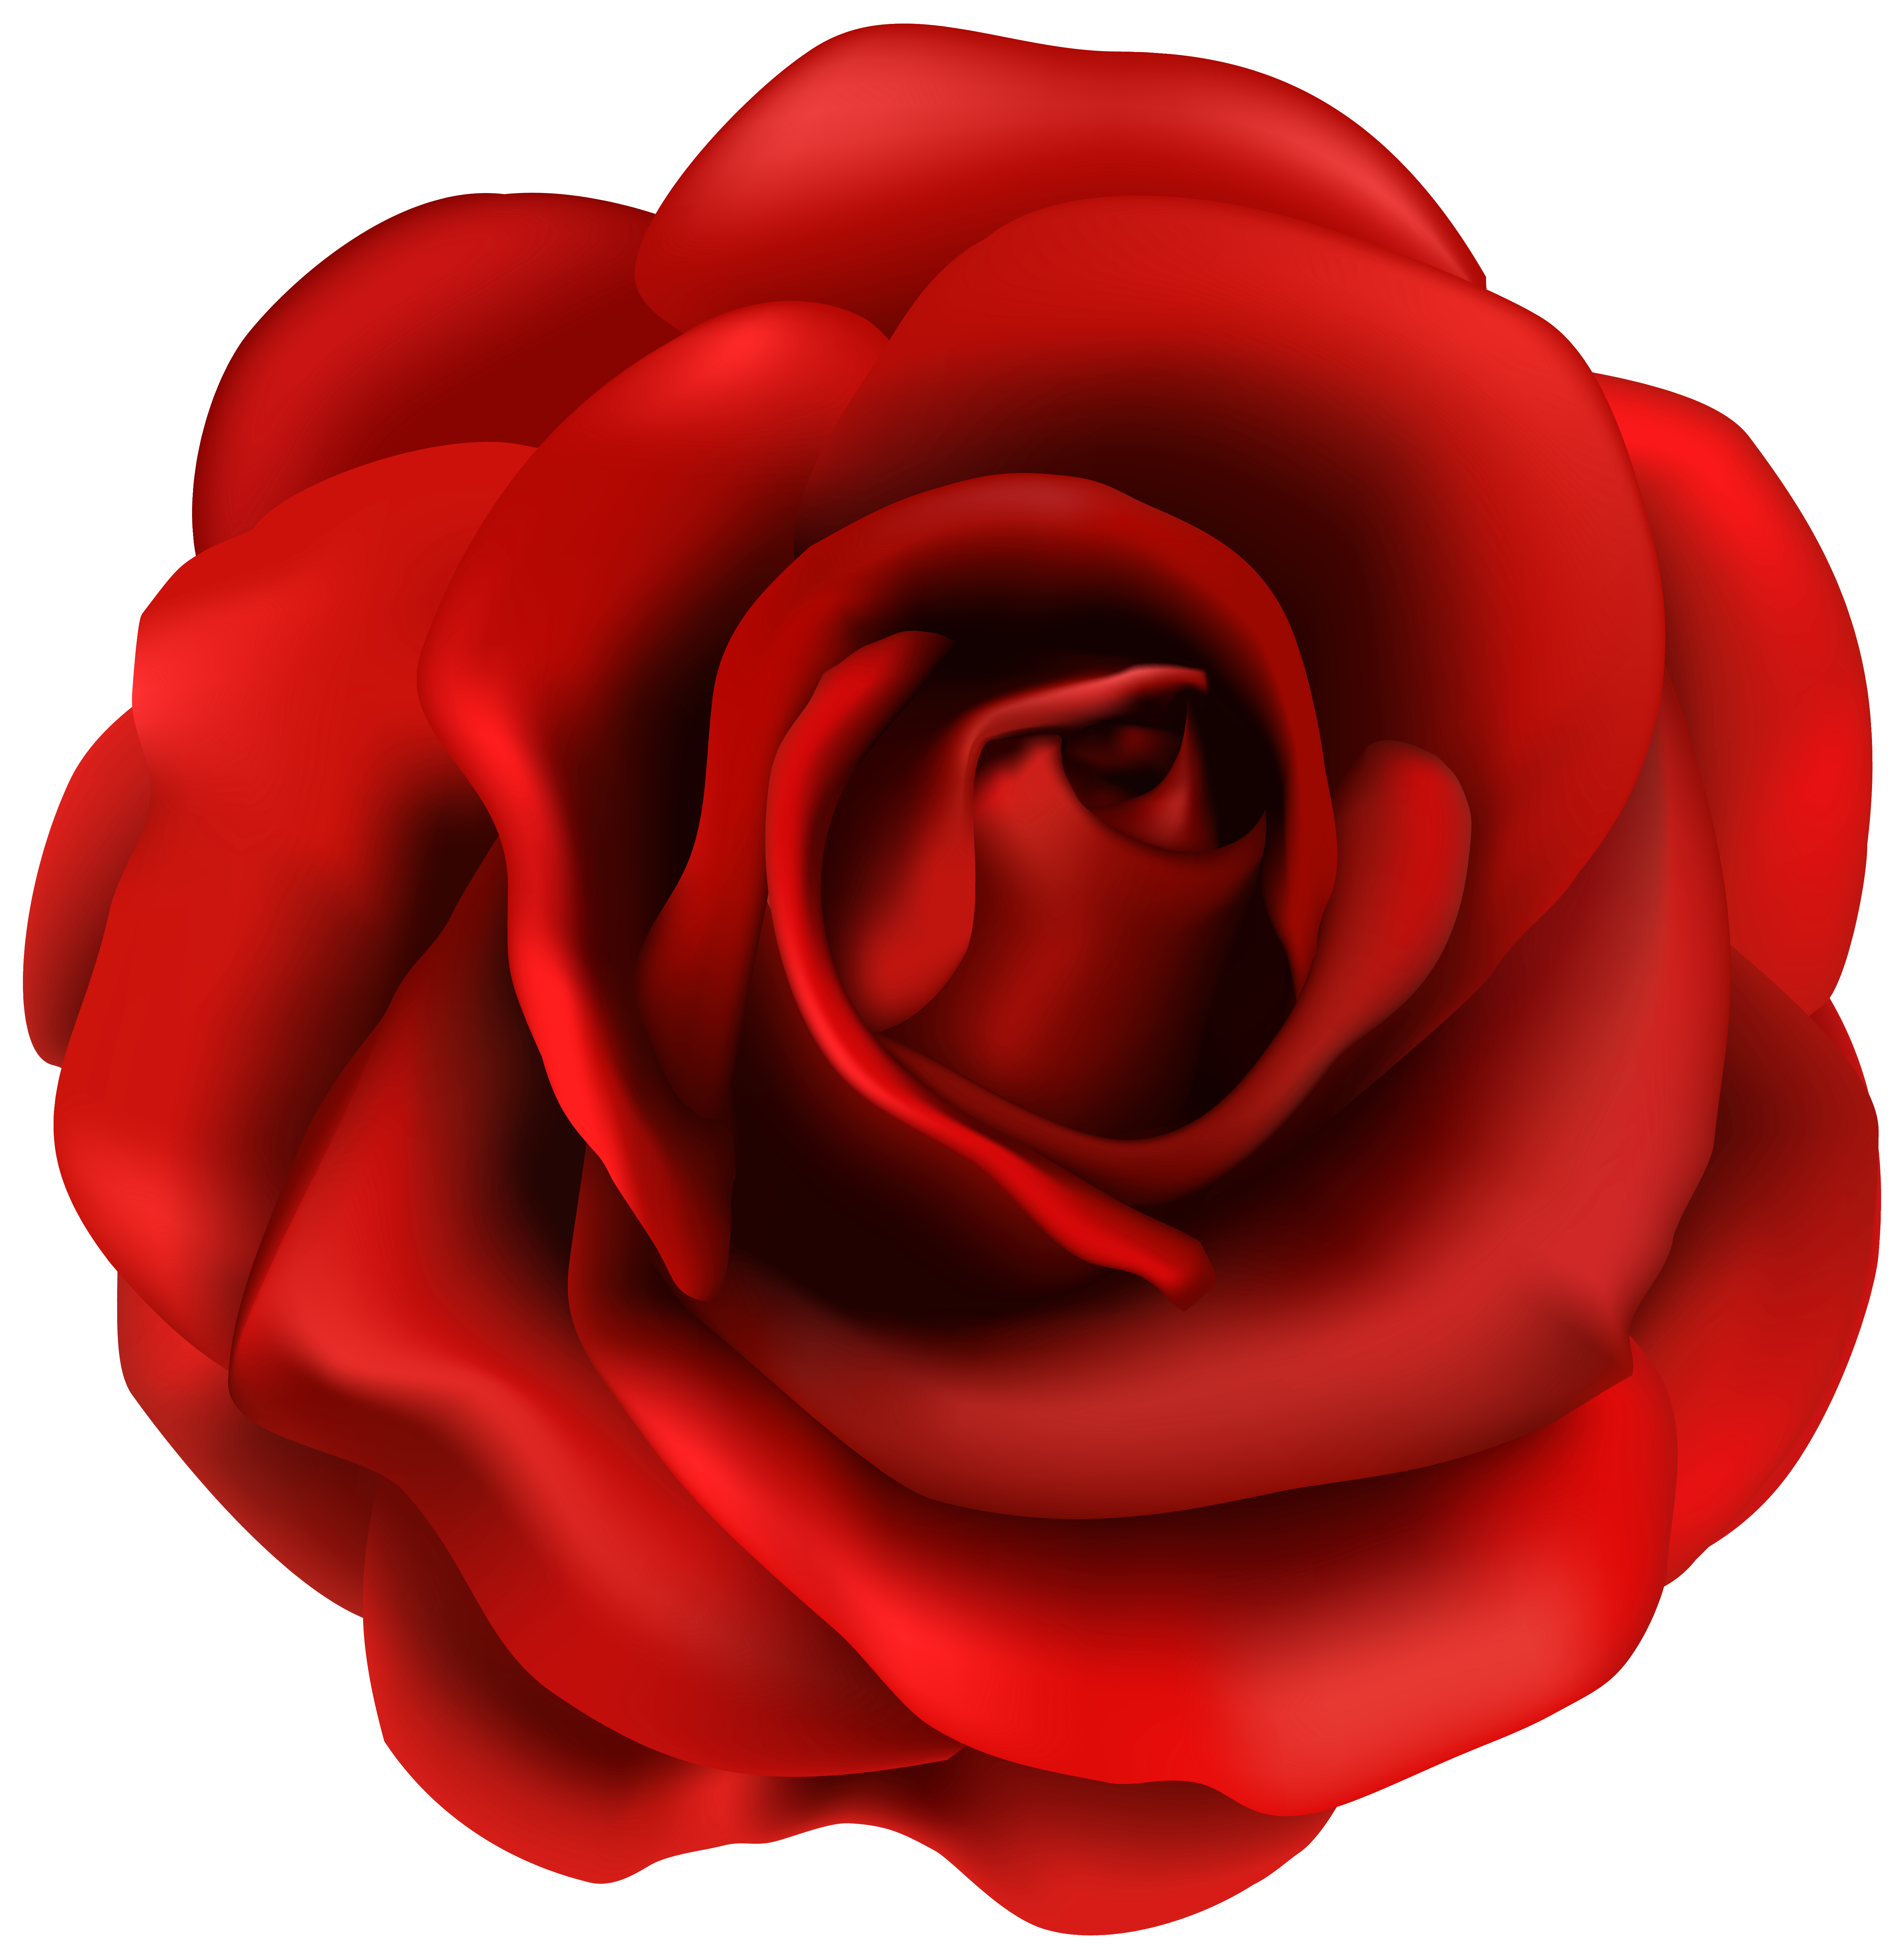 Red rose flower clipart image Rose flower png, Red rose